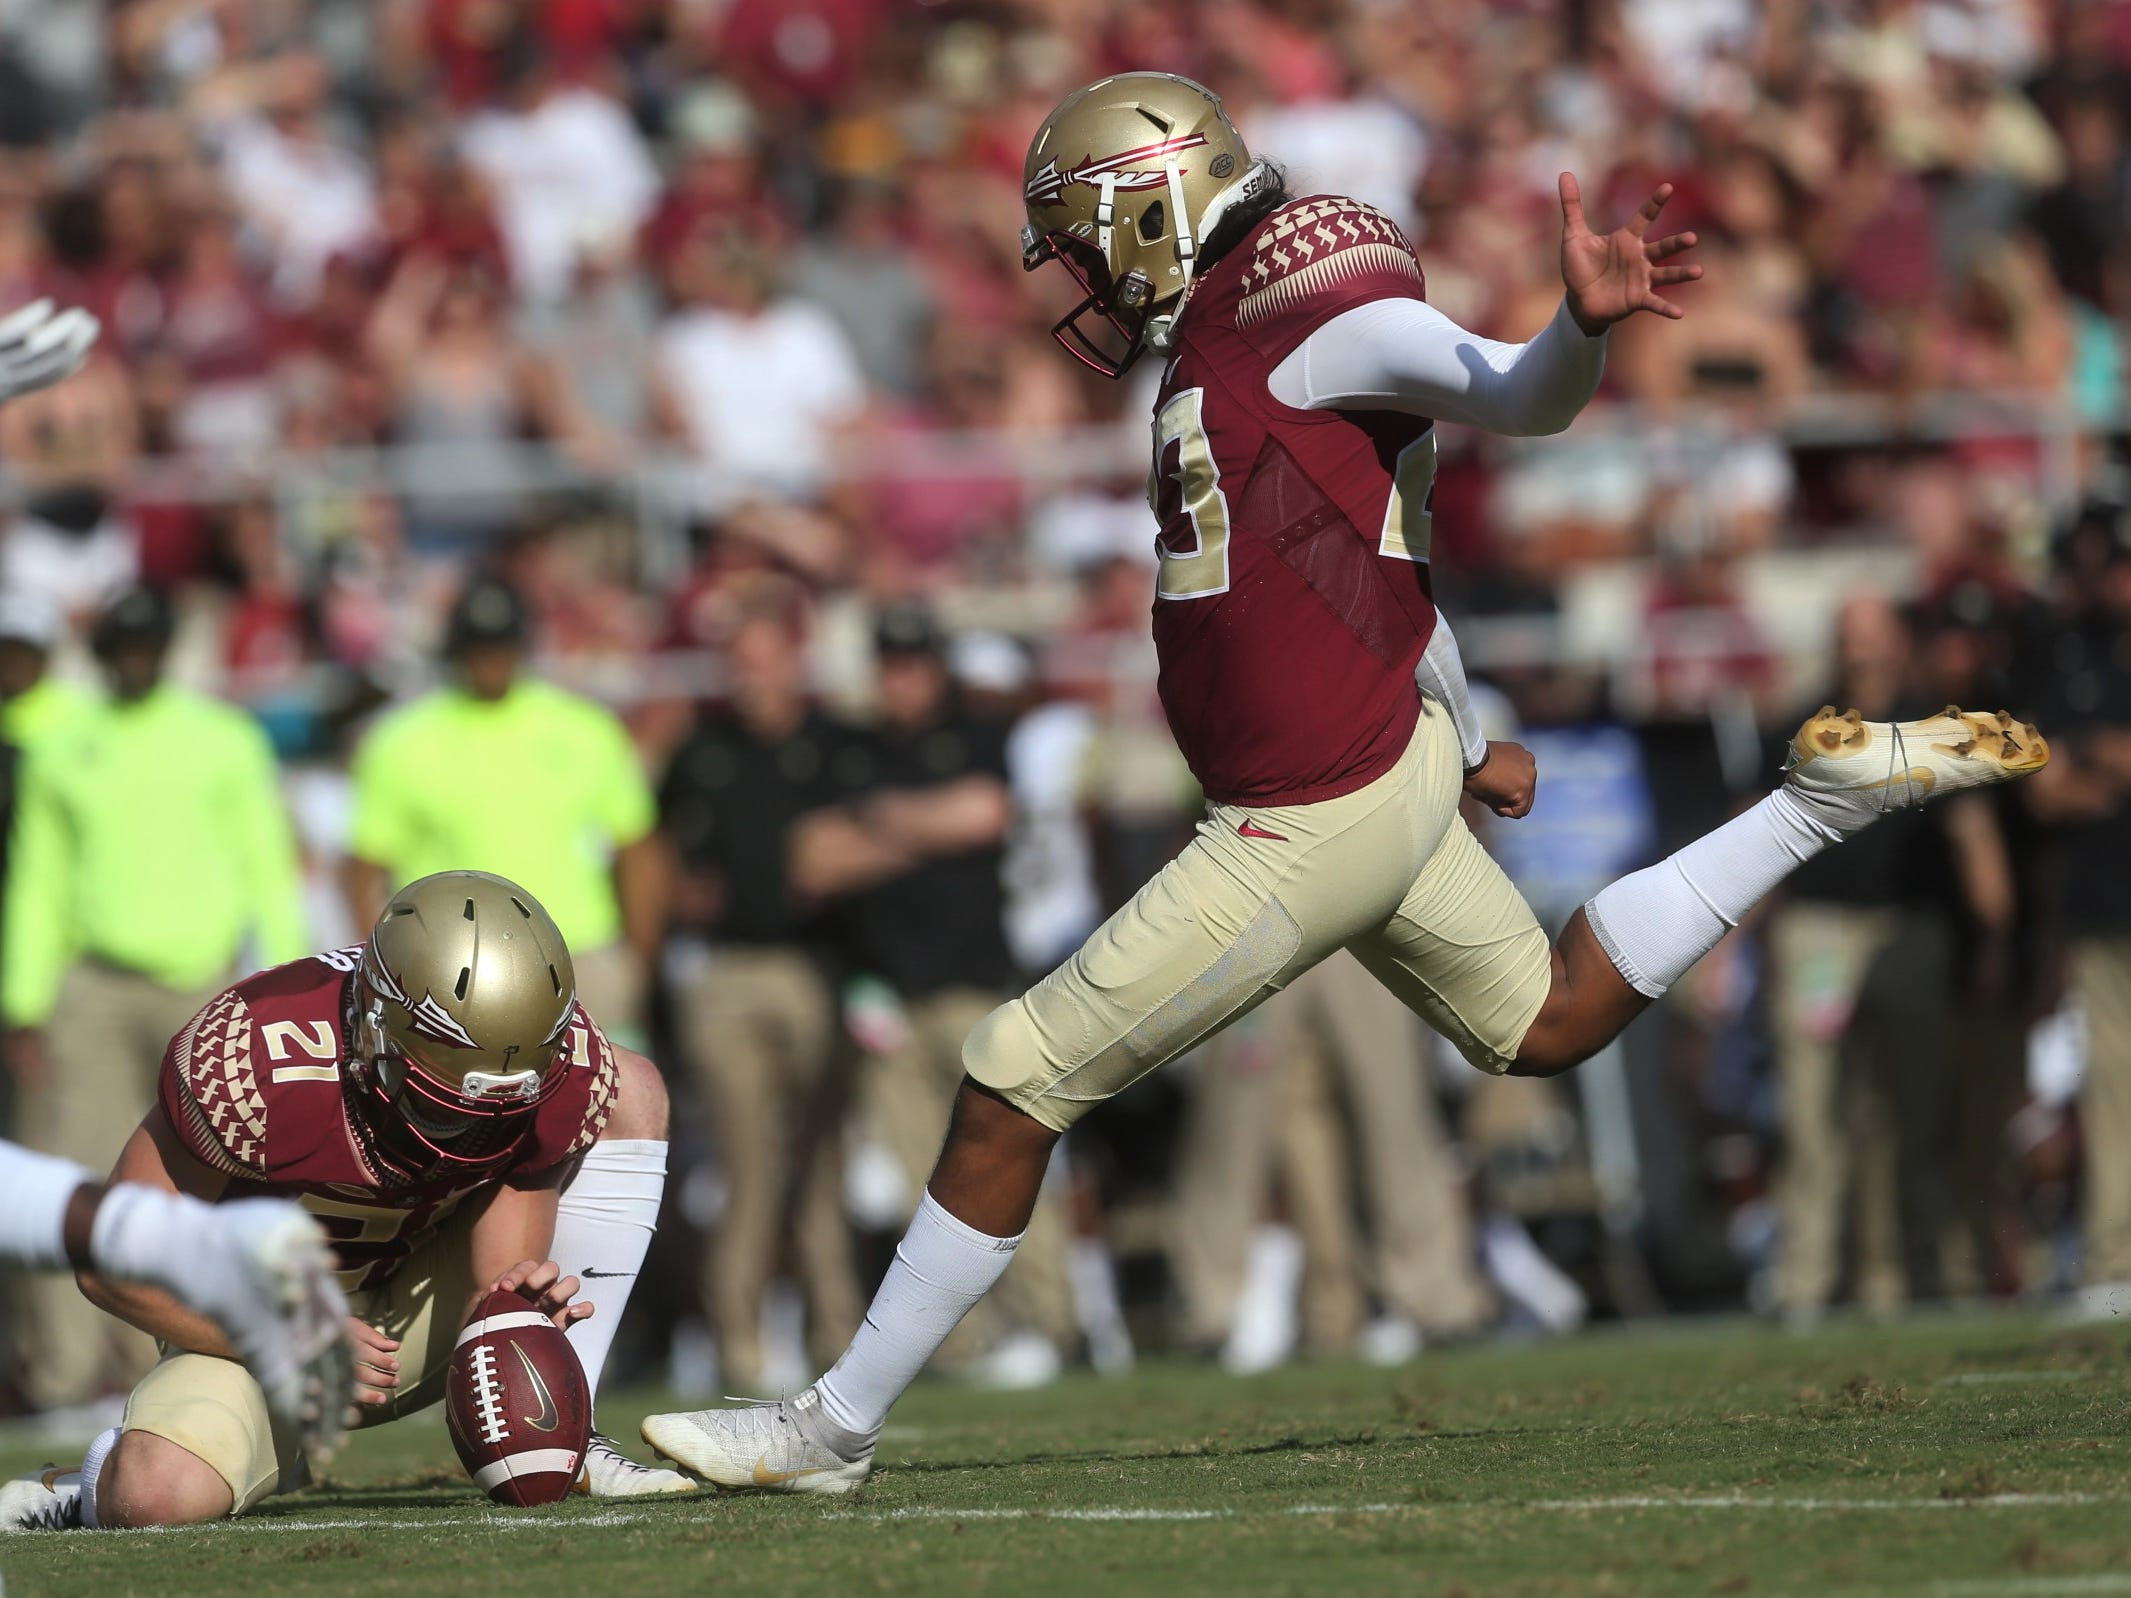 Florida State kicker Ricky Aguayo kicks an extra point against Wake Forest during a game at Doak Campbell Stadium on Saturday, Oct. 20, 2018.